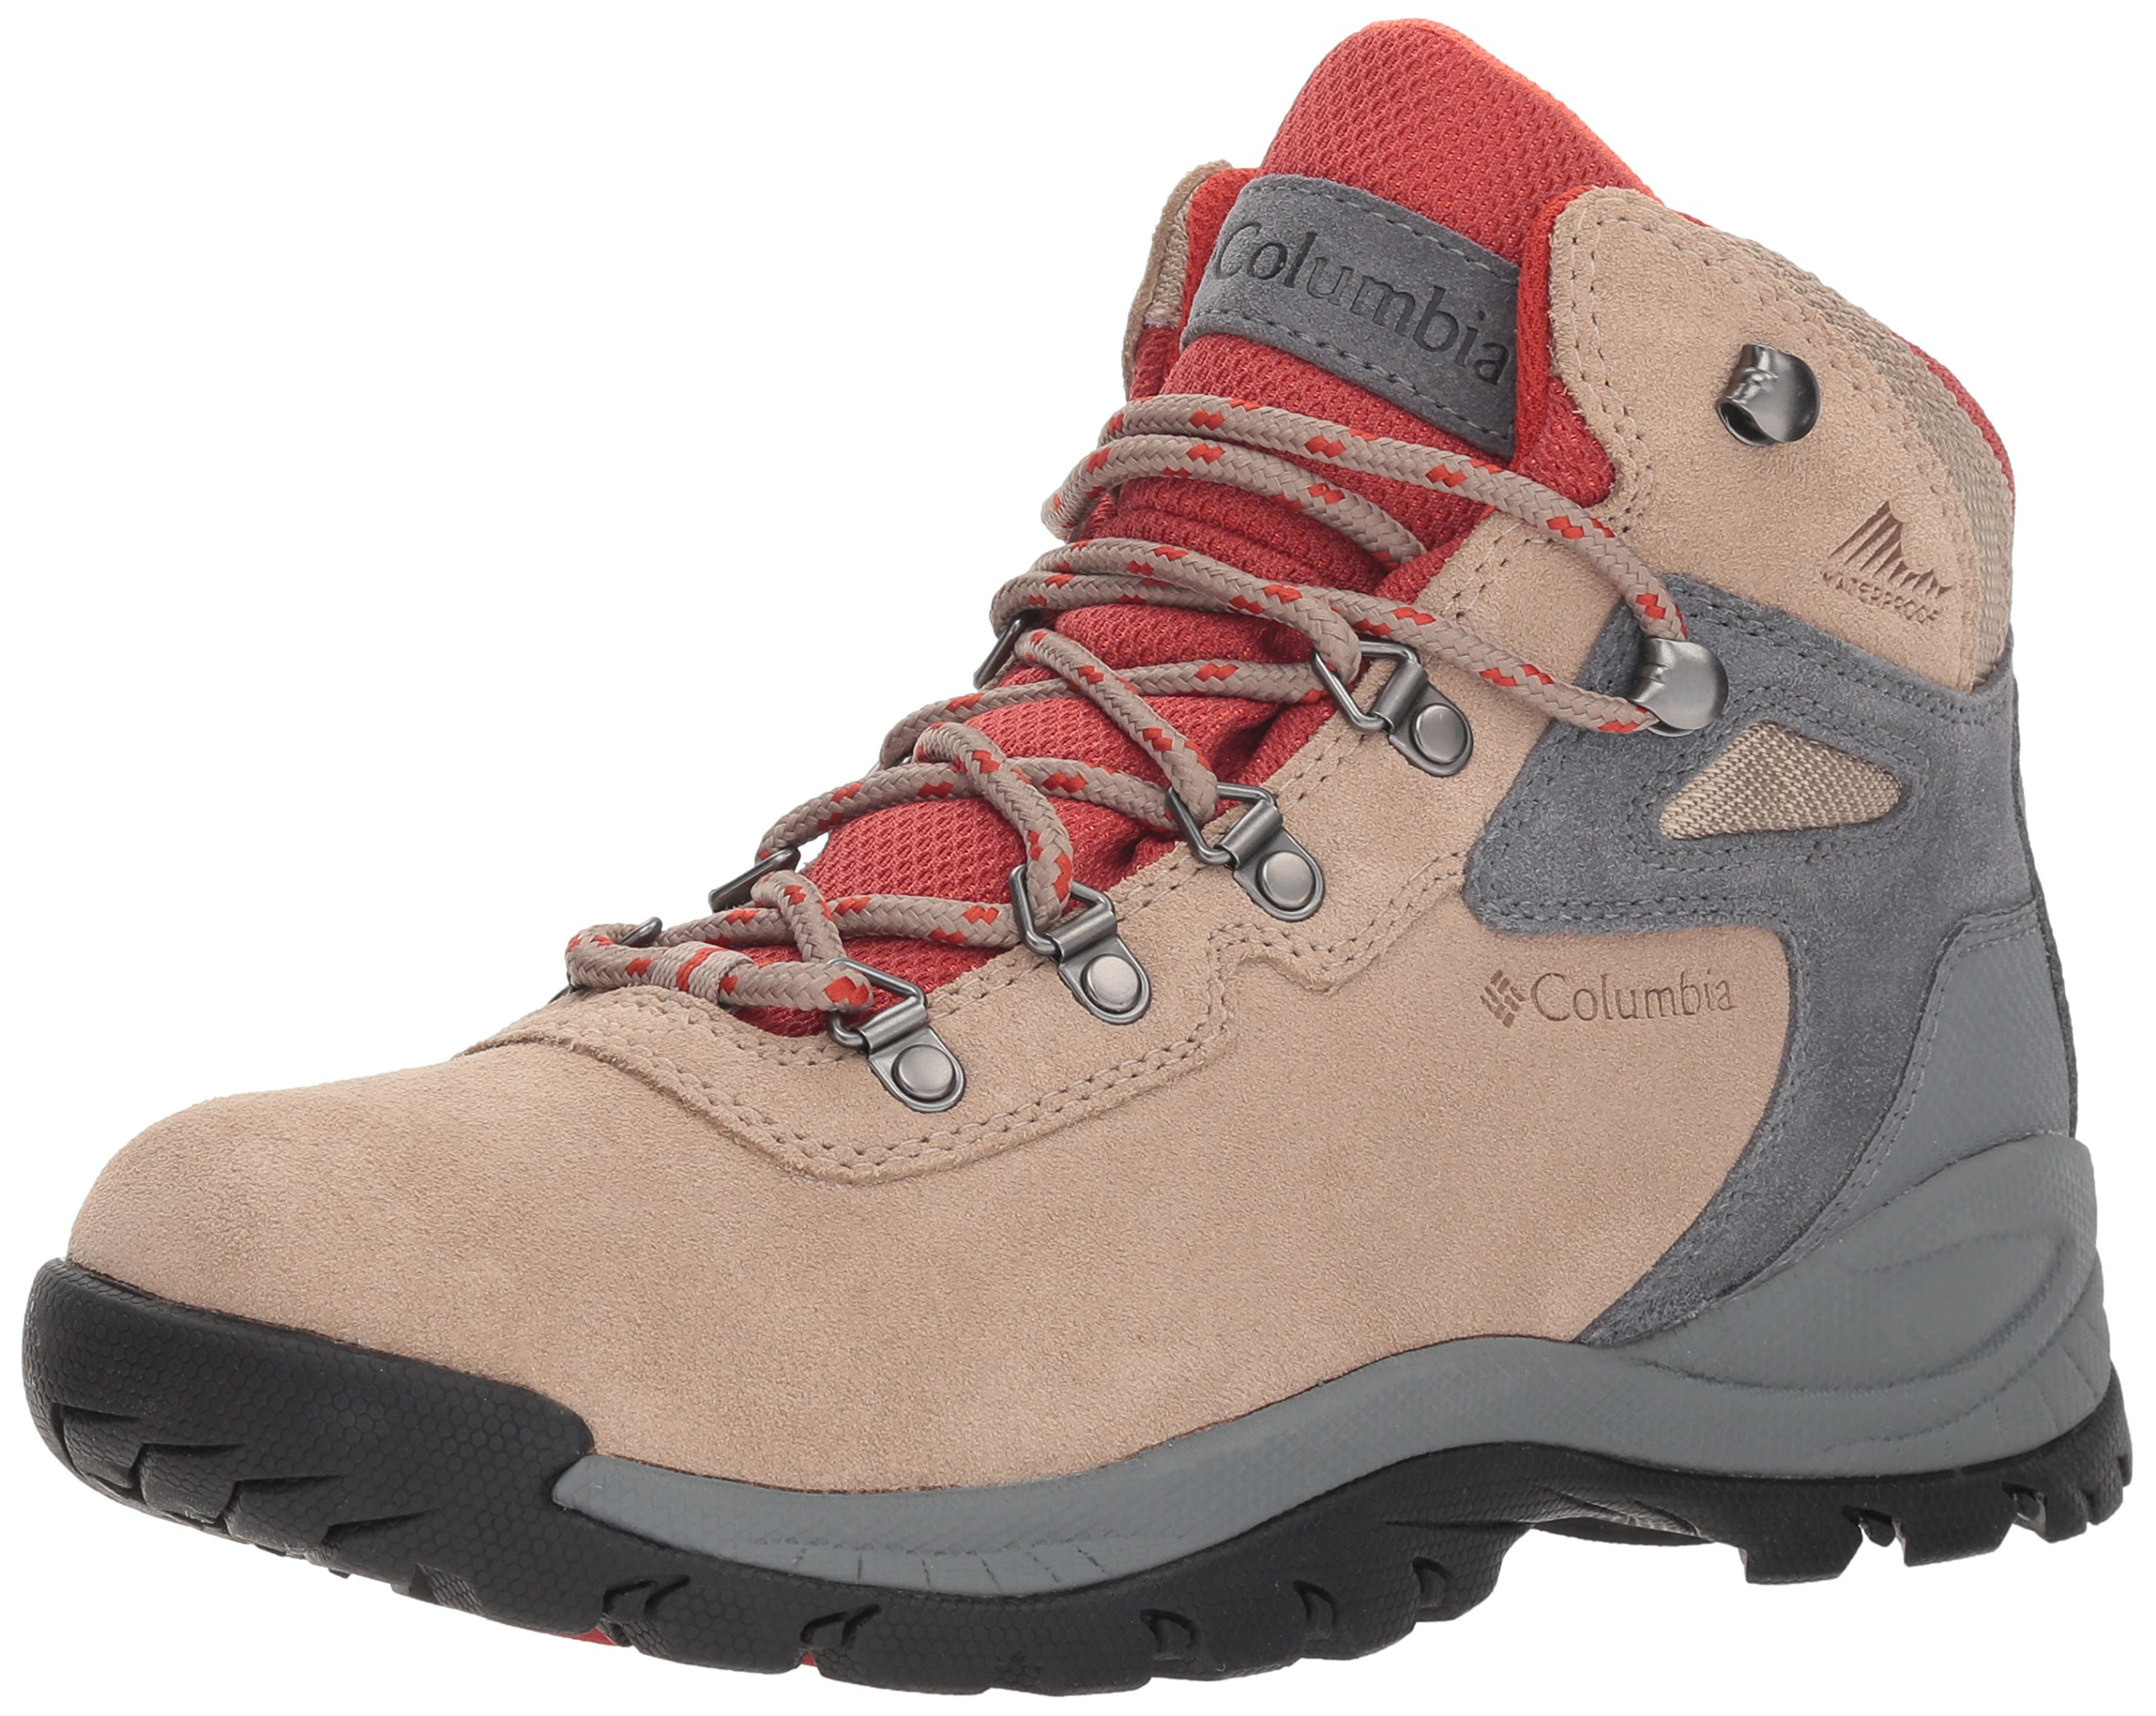 Columbia Women's Newton Ridge Plus Waterproof Amped Hiking Boot, Oxford Tan, Flame, 9 Regular US